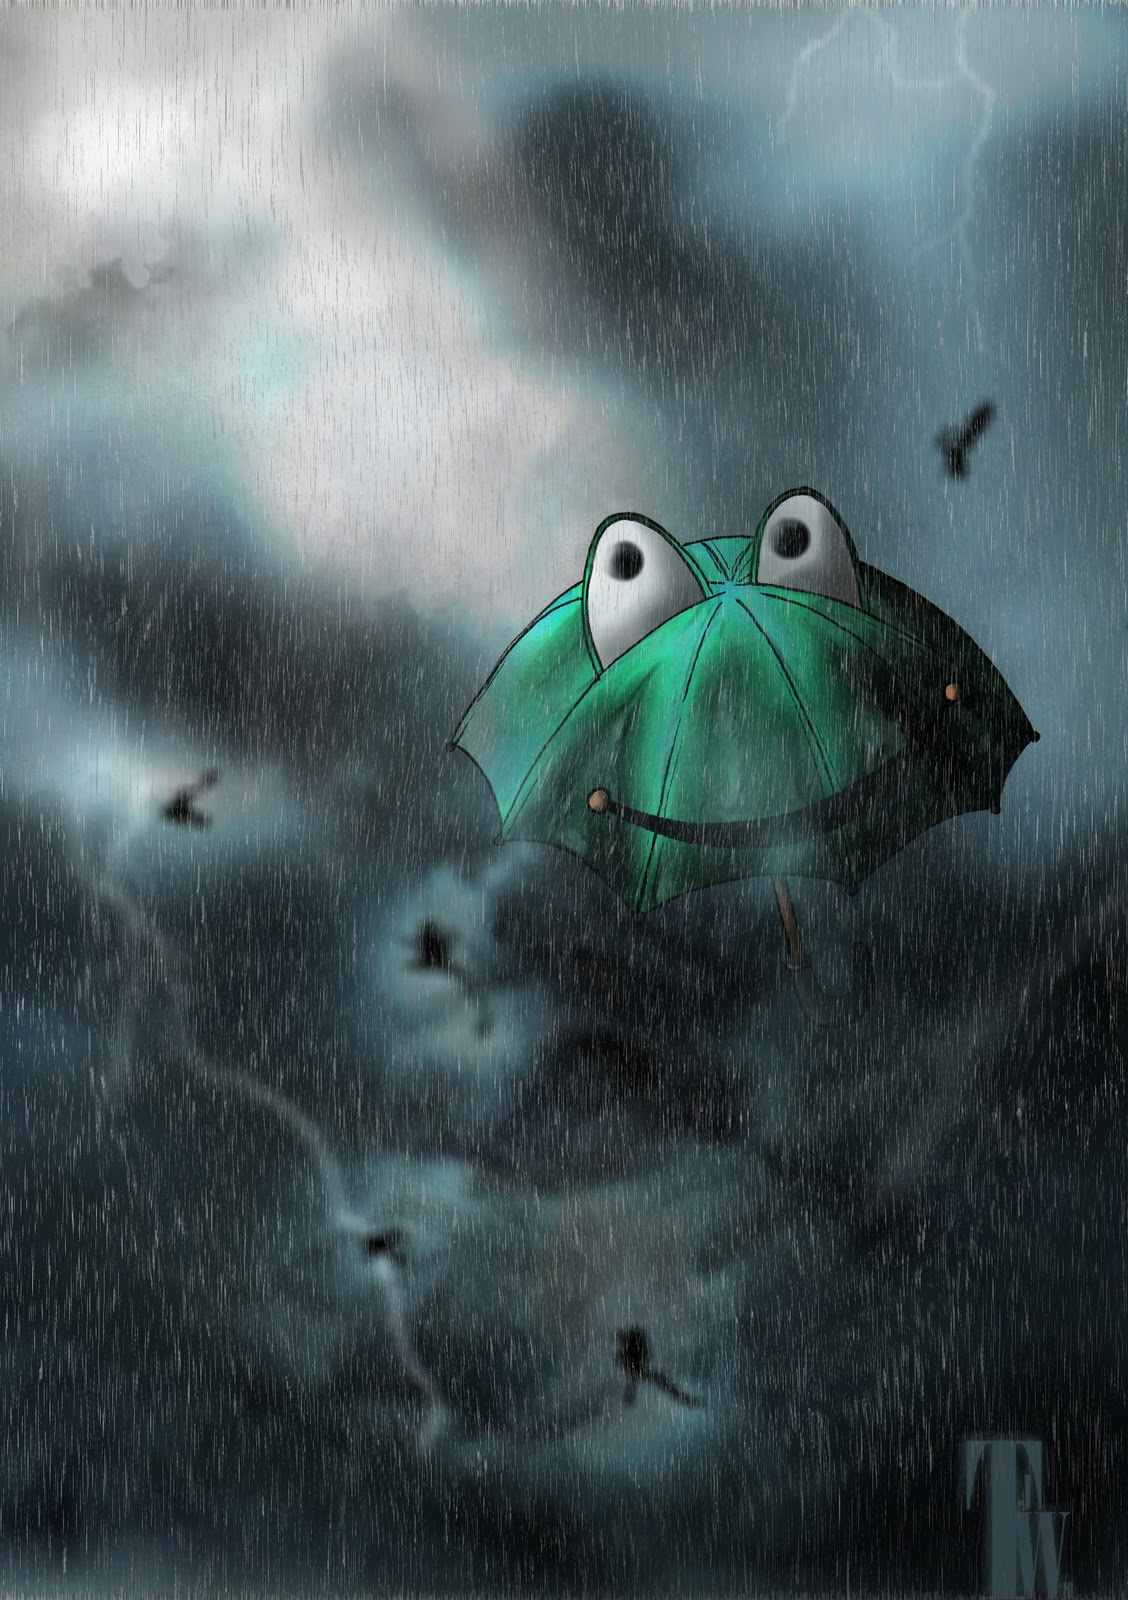 Raining Frogs Report of frogs raining in